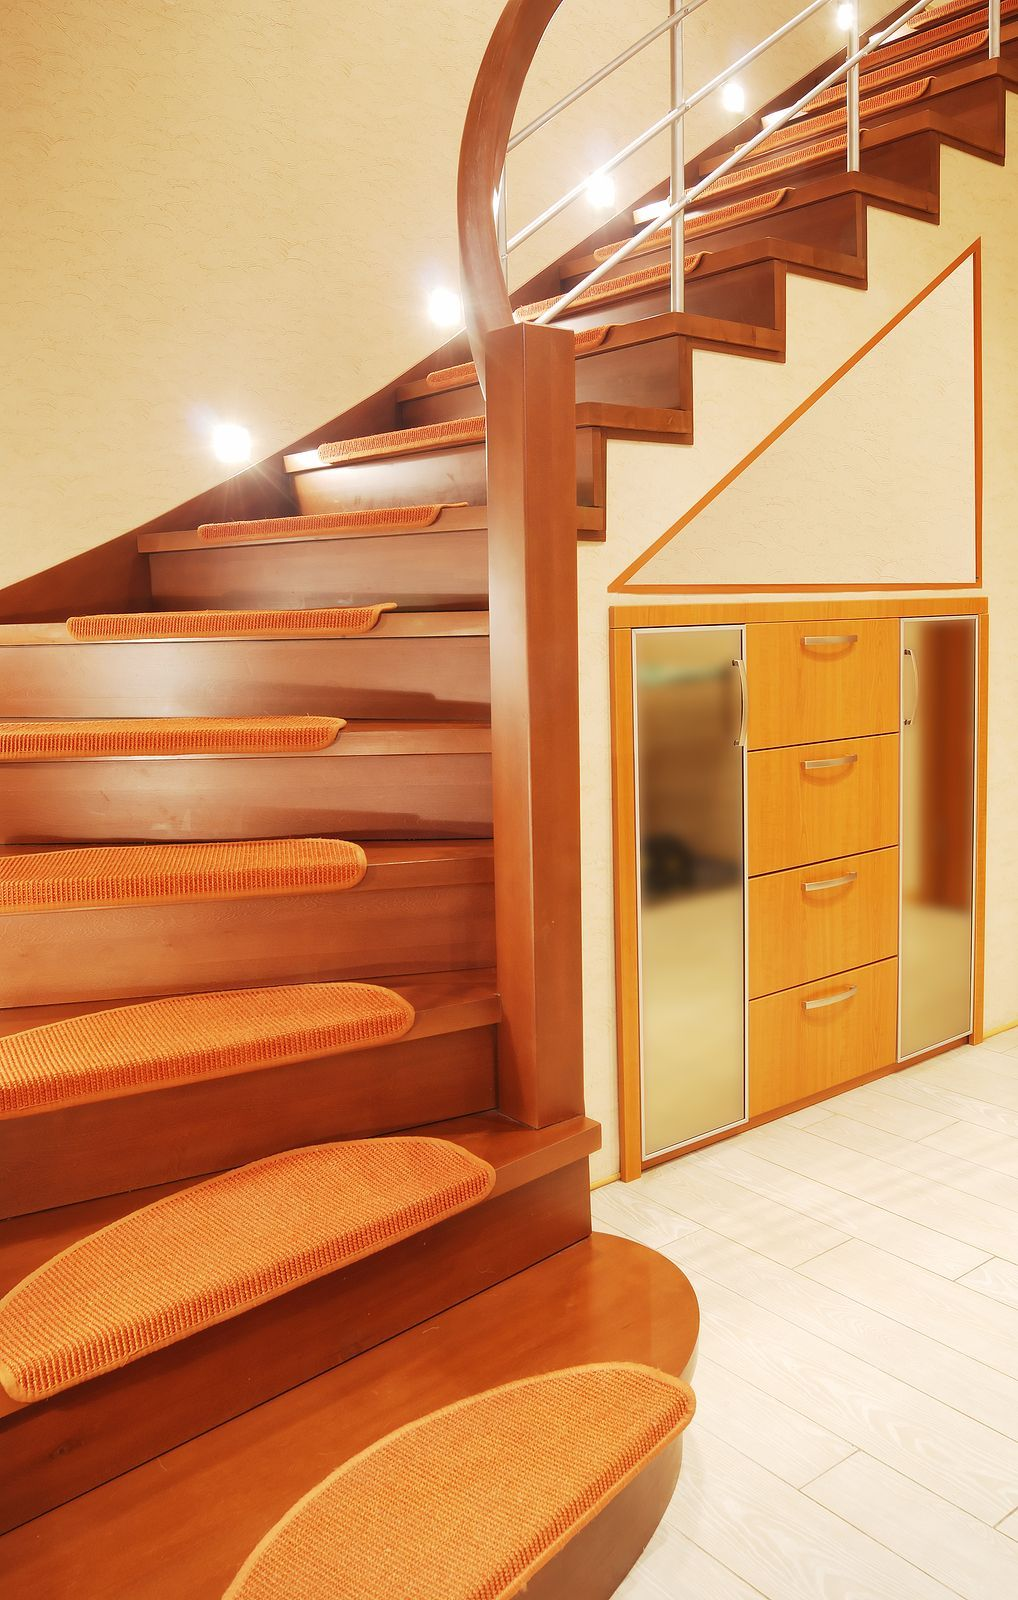 Retro Staircase By Stair Parts.com.